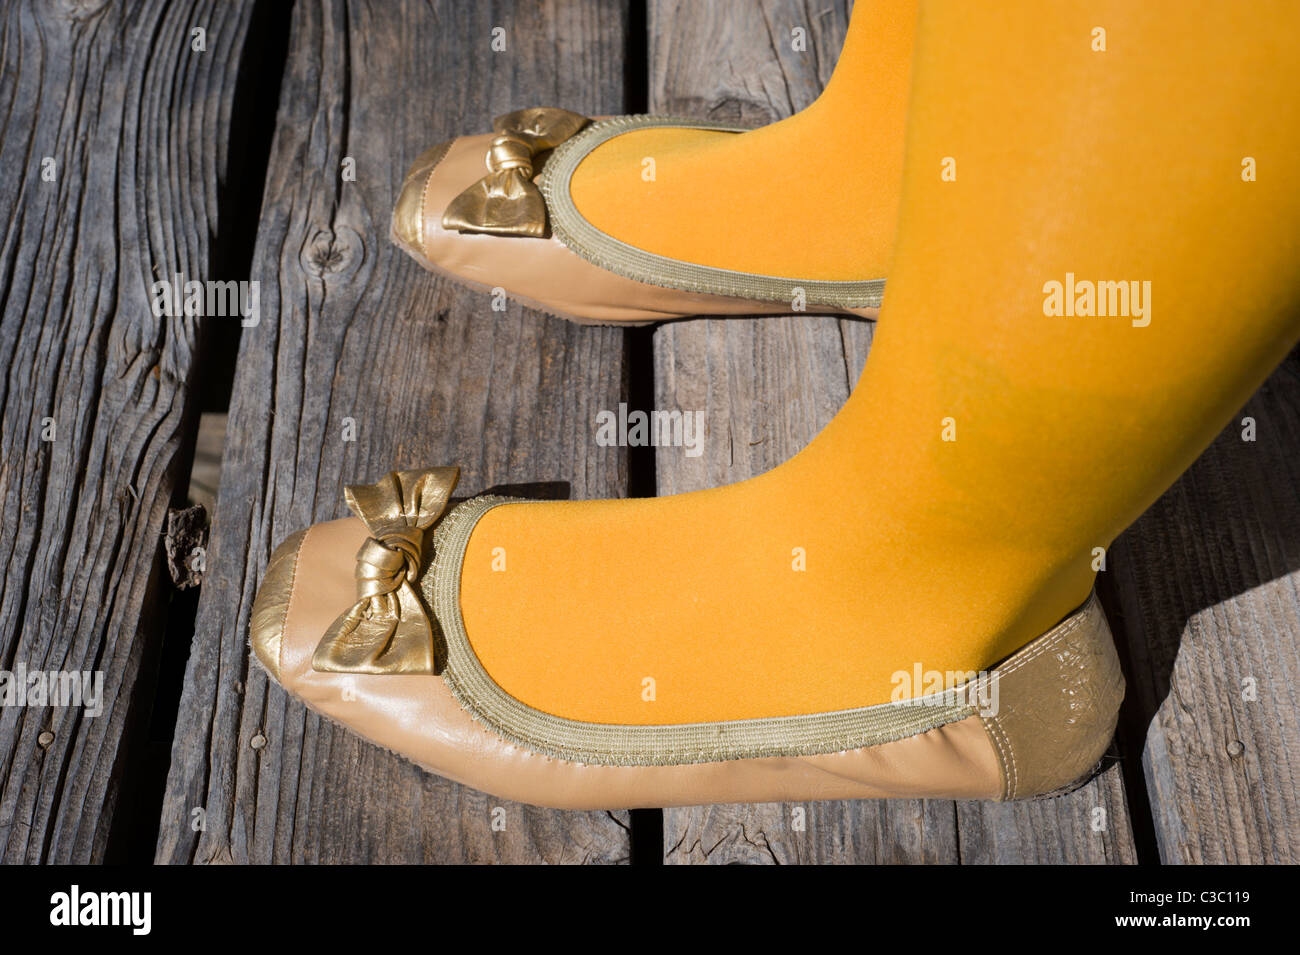 Close-up of a pair of comfy slippers decorated with bows in the Hondo Valley, New Mexico. - Stock Image